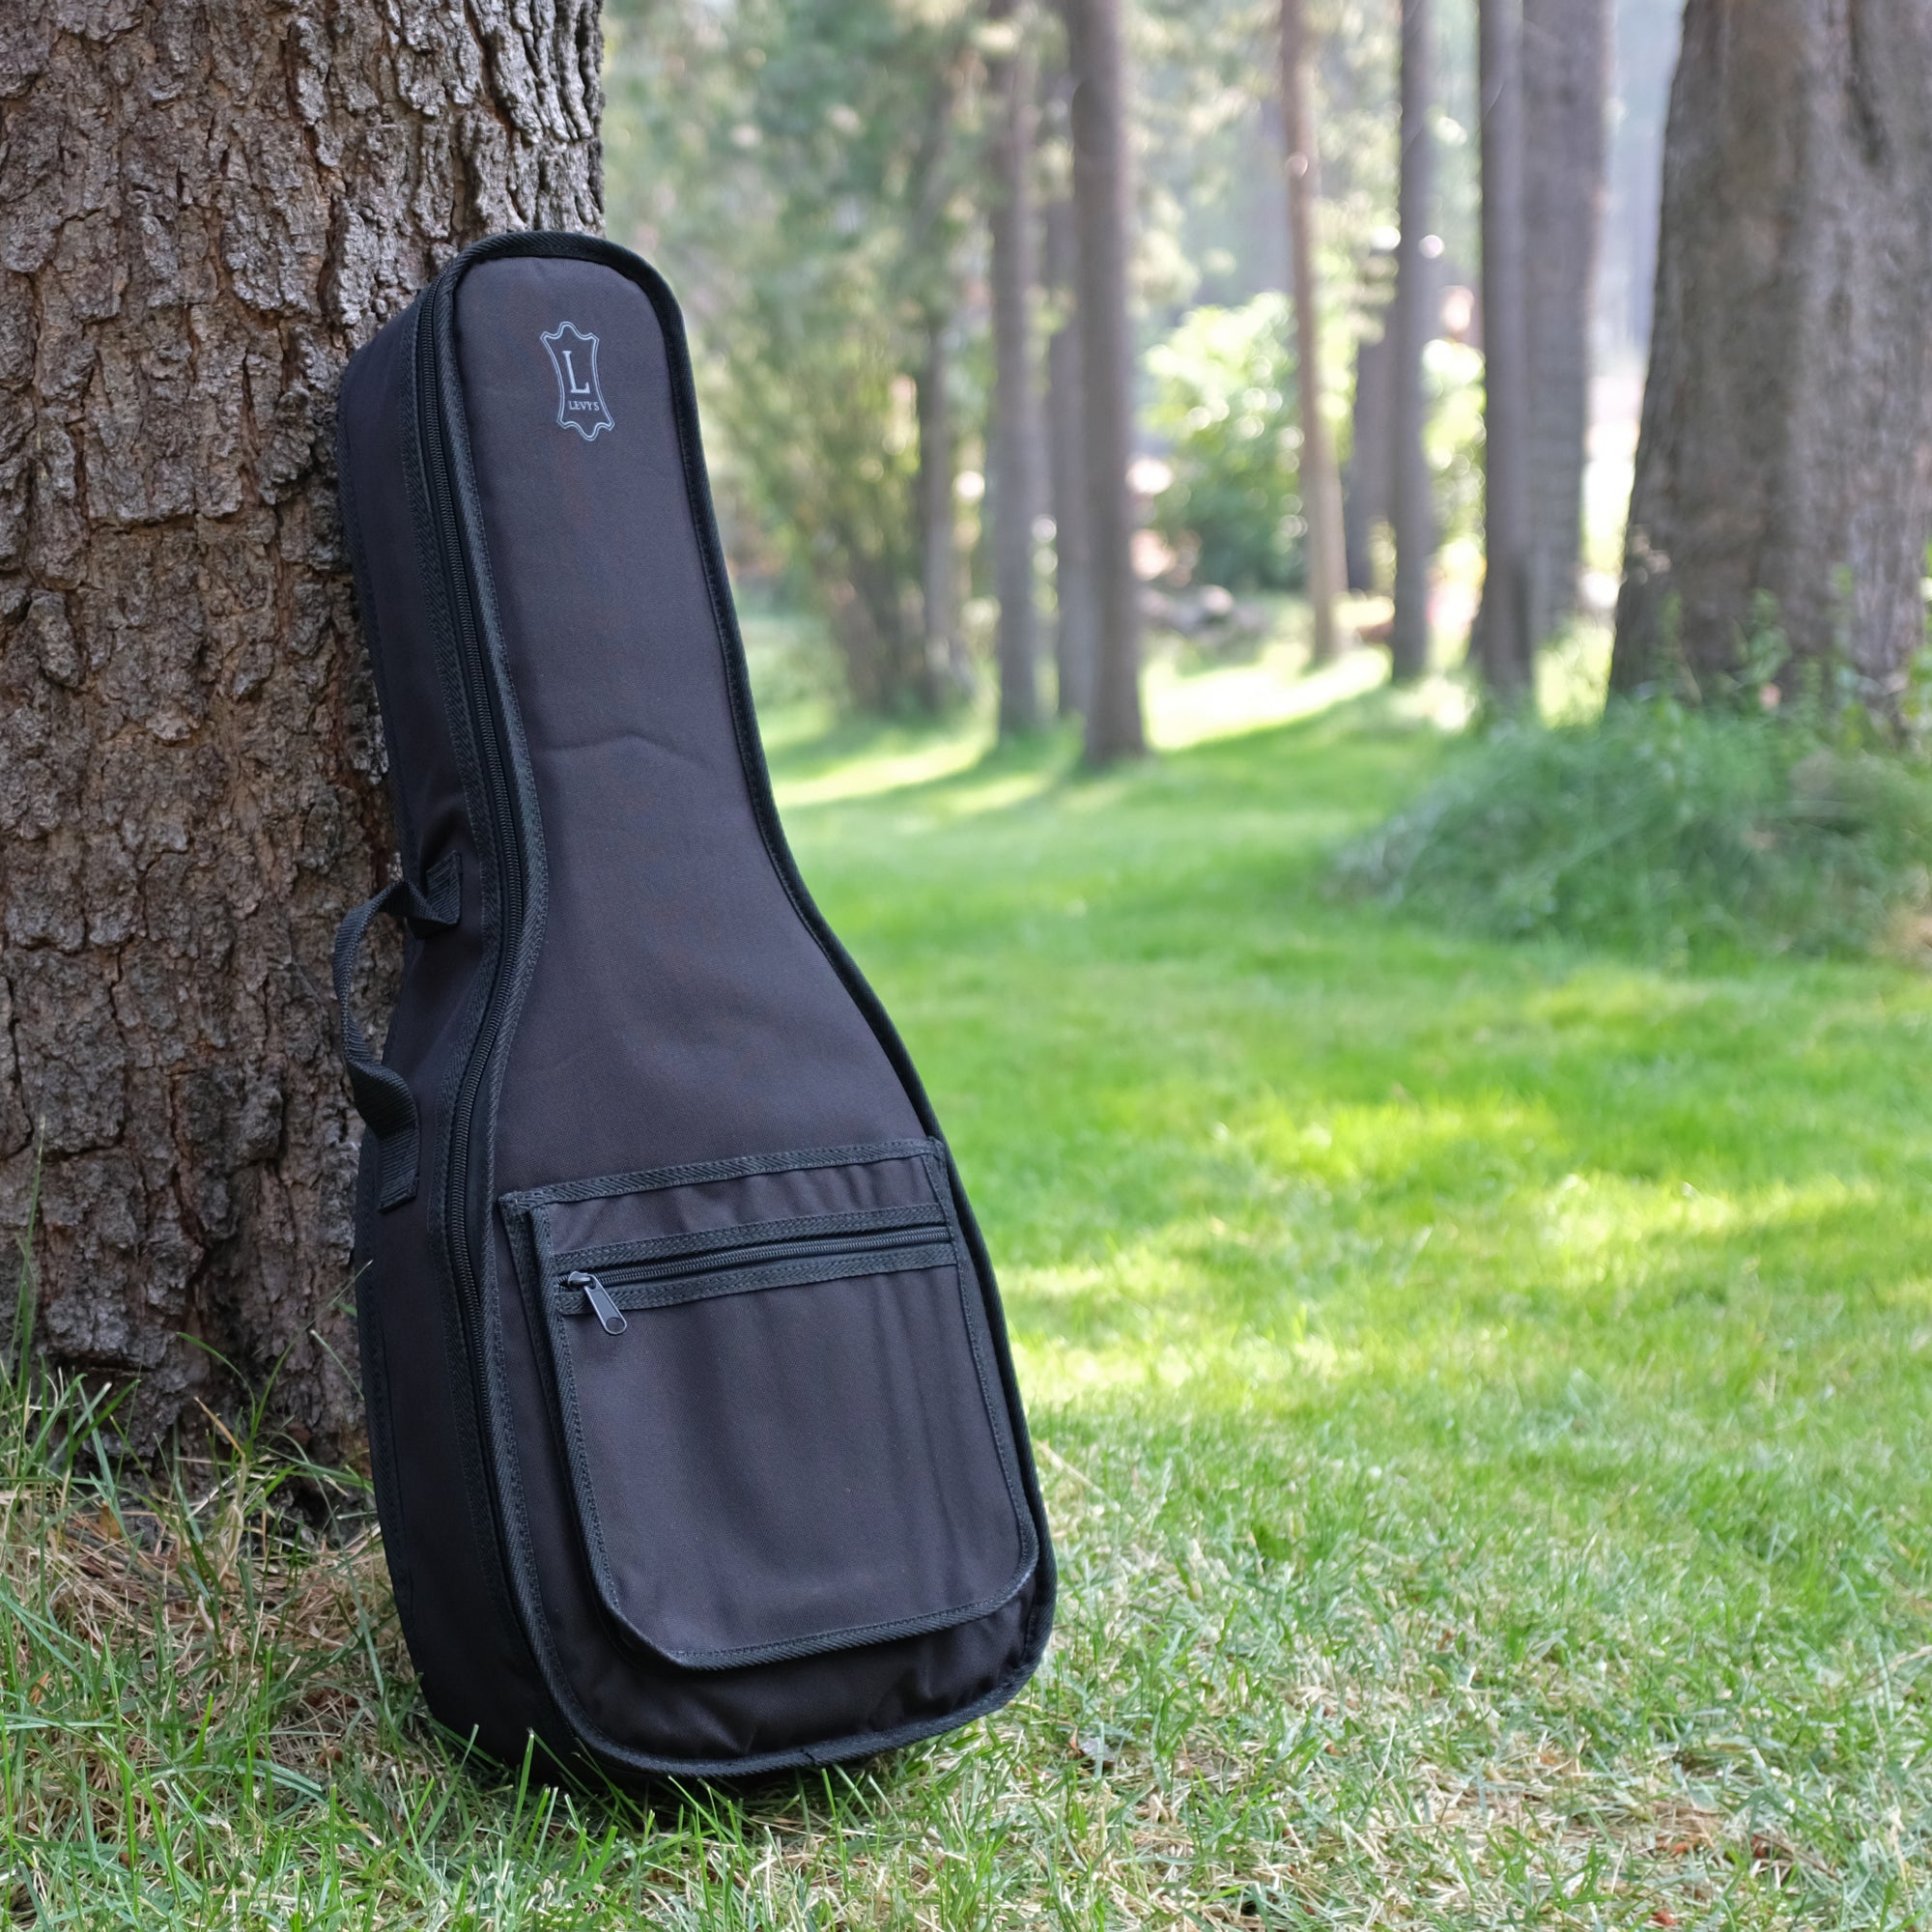 Levy's Tenor Ukulele Bag